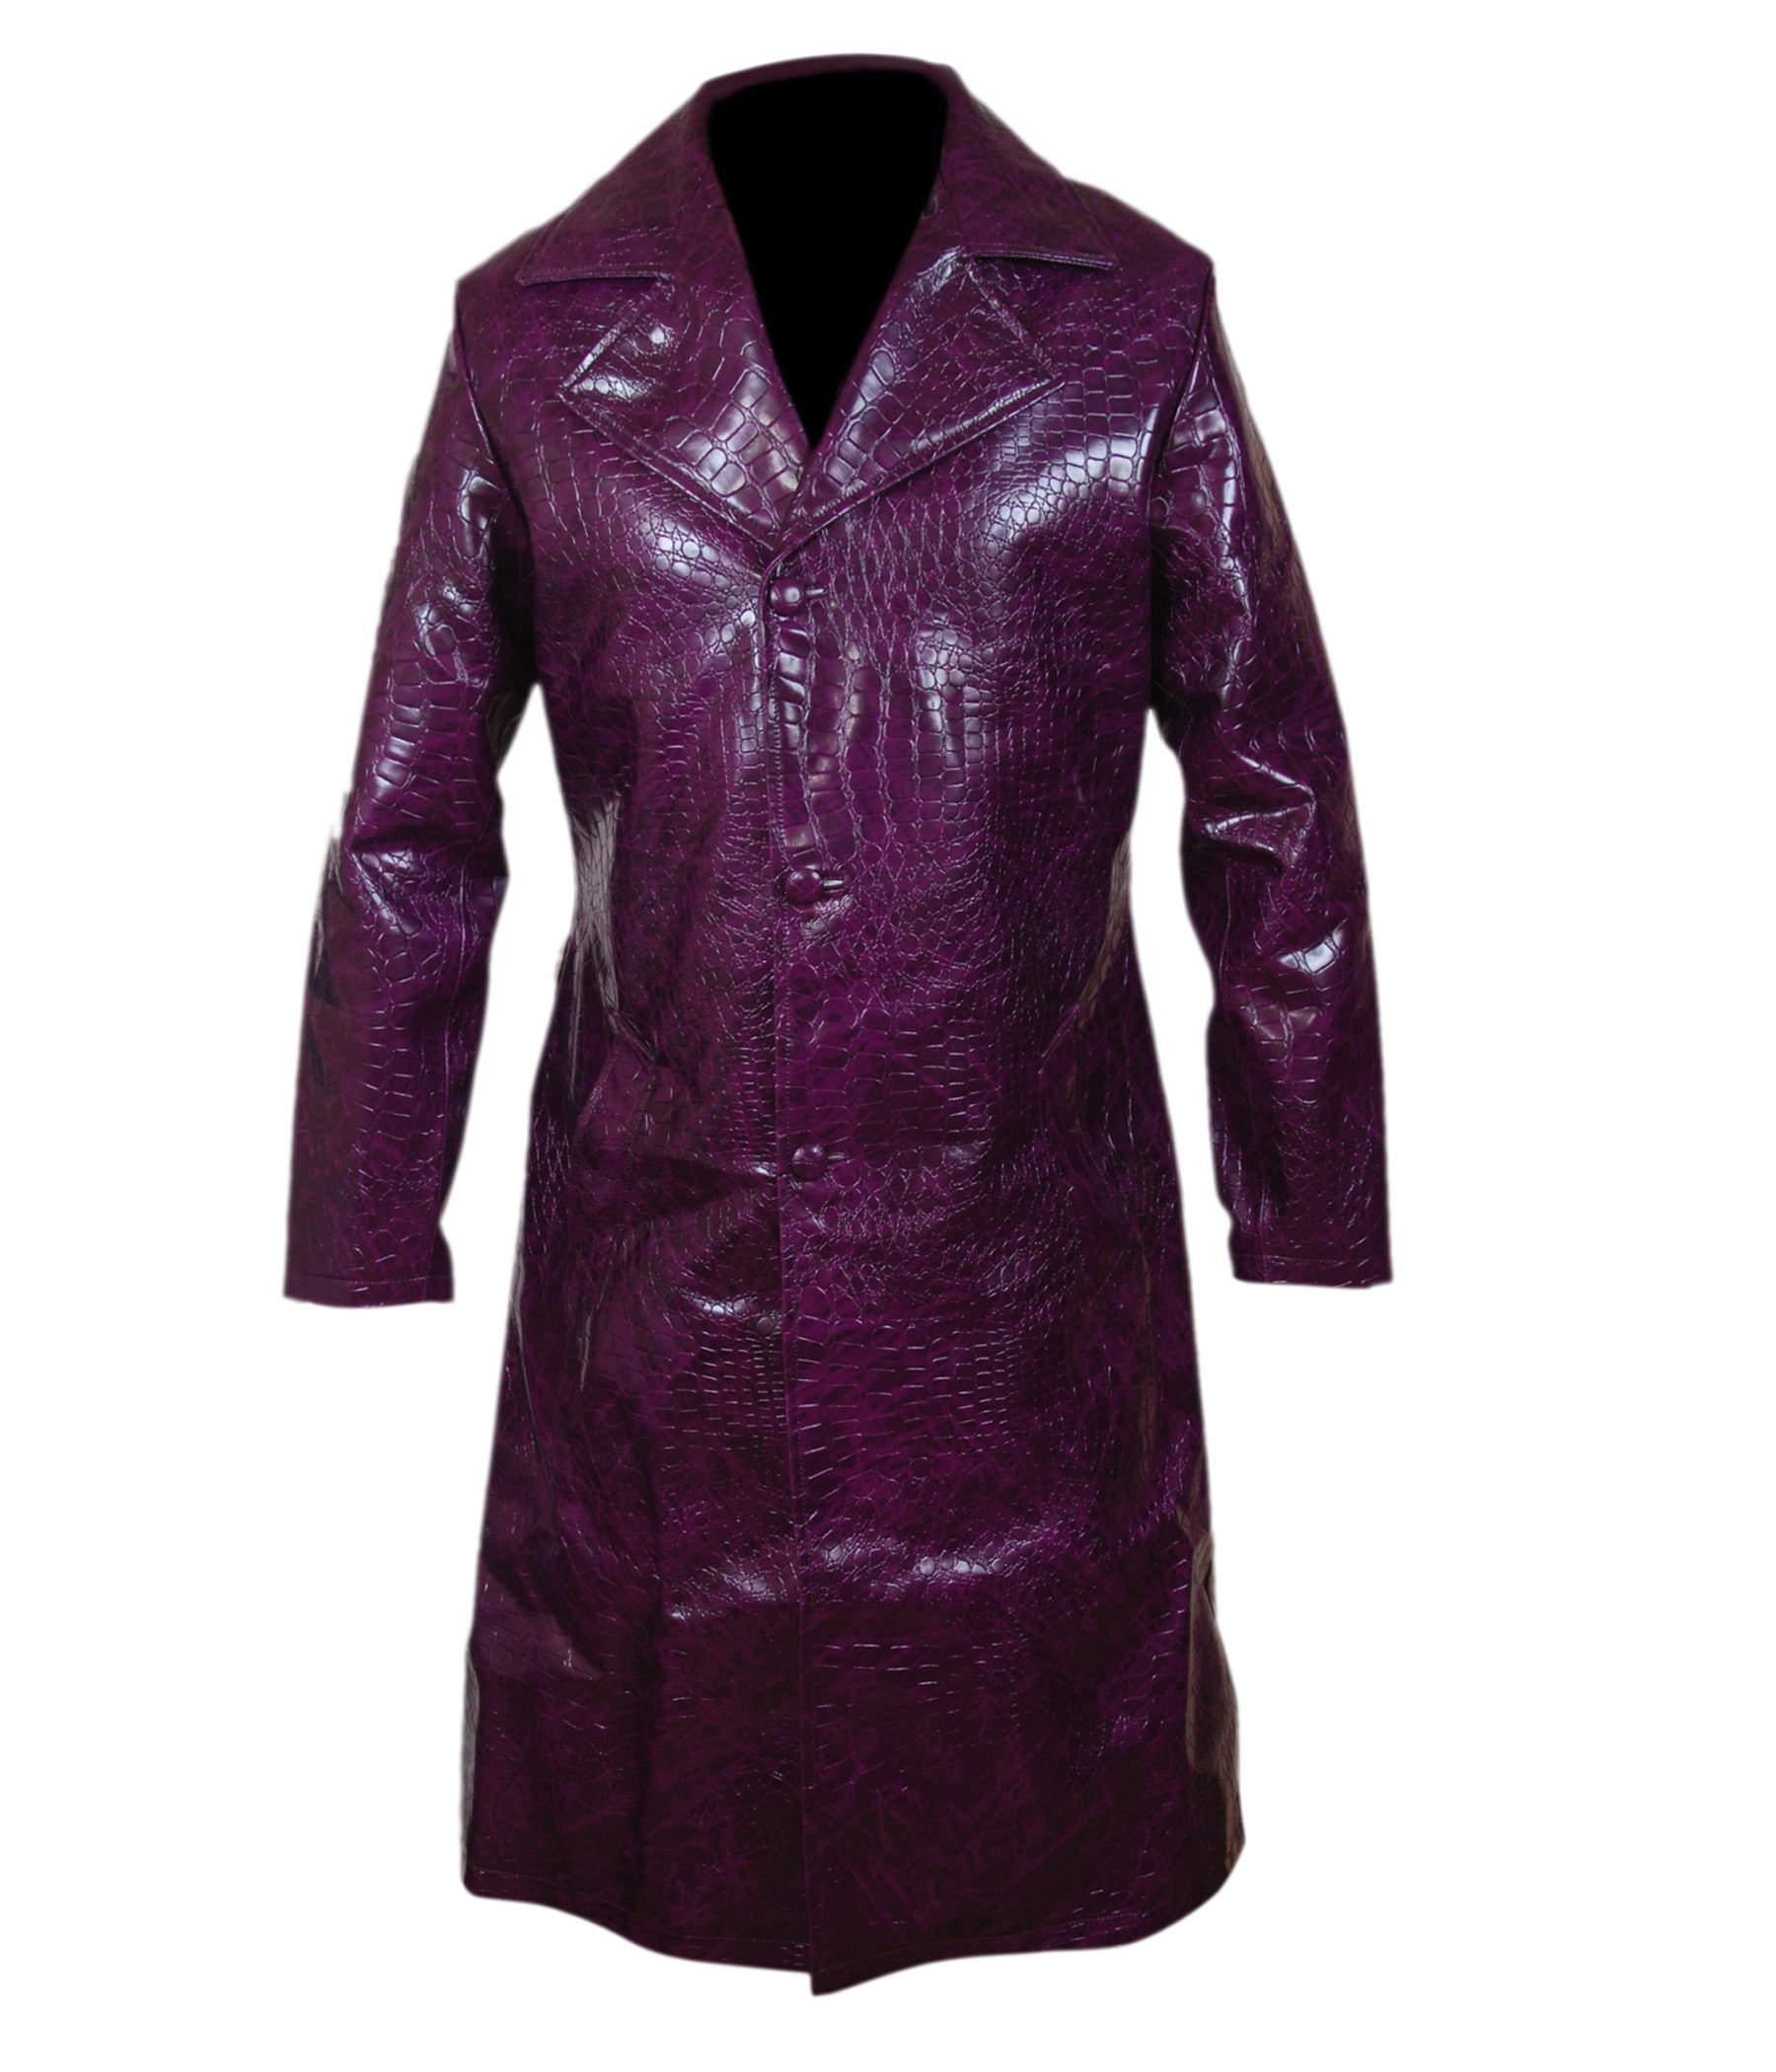 F&H Boy's Suicide Squad Jared Leto Joker Purple Long Coat S Purple